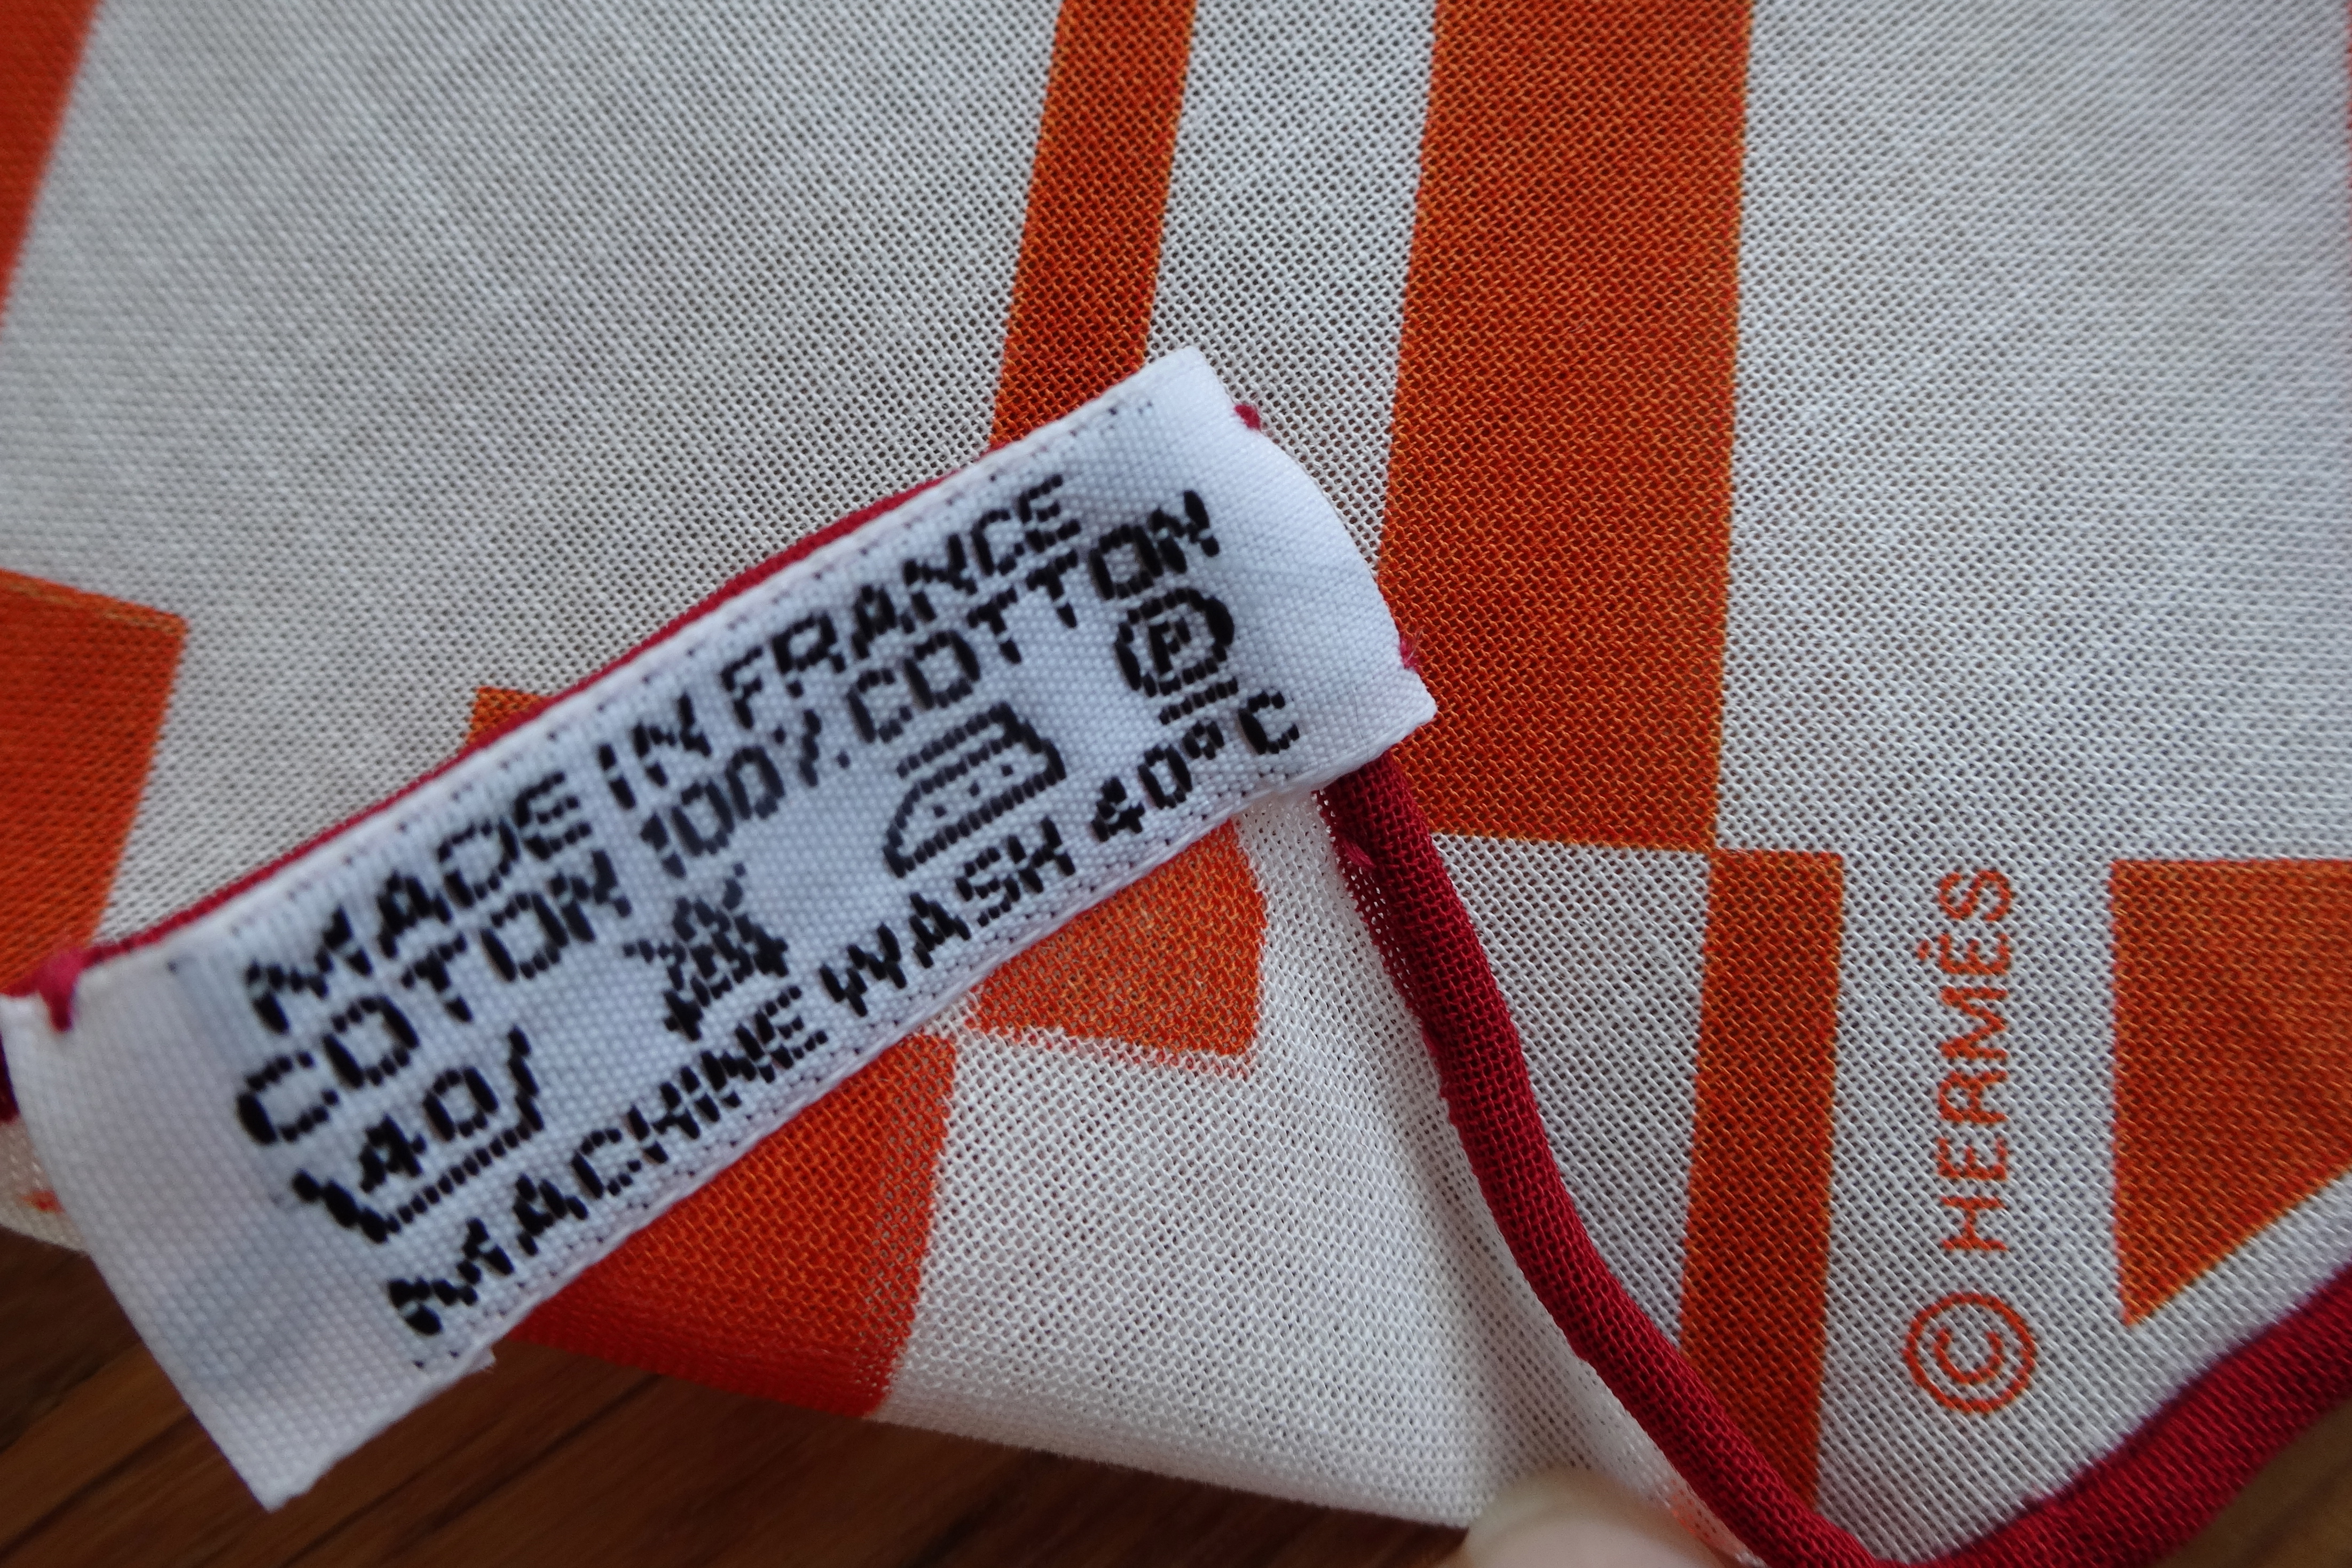 Hermès care tag and (c) mark